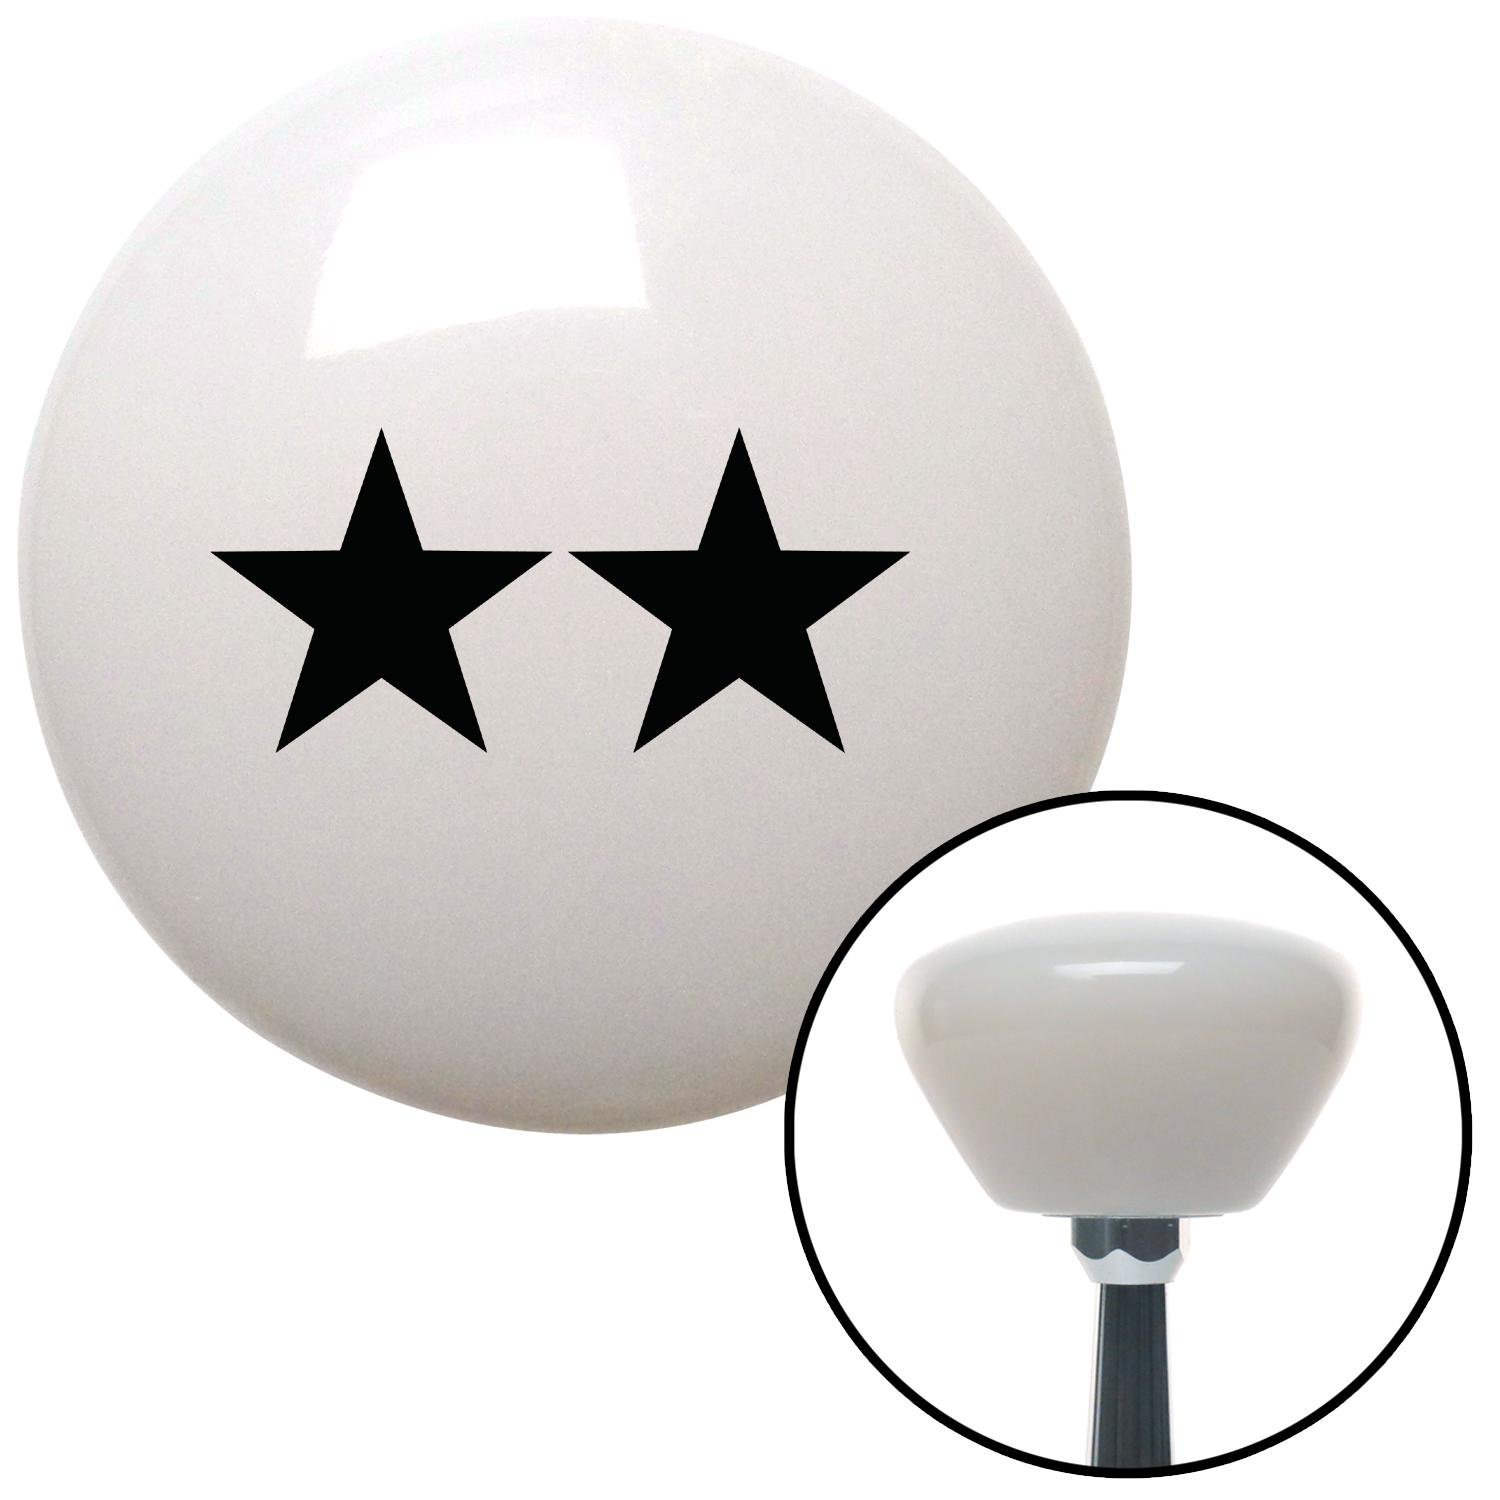 Black Officer 08 - Major General American Shifter 154409 White Retro Shift Knob with M16 x 1.5 Insert